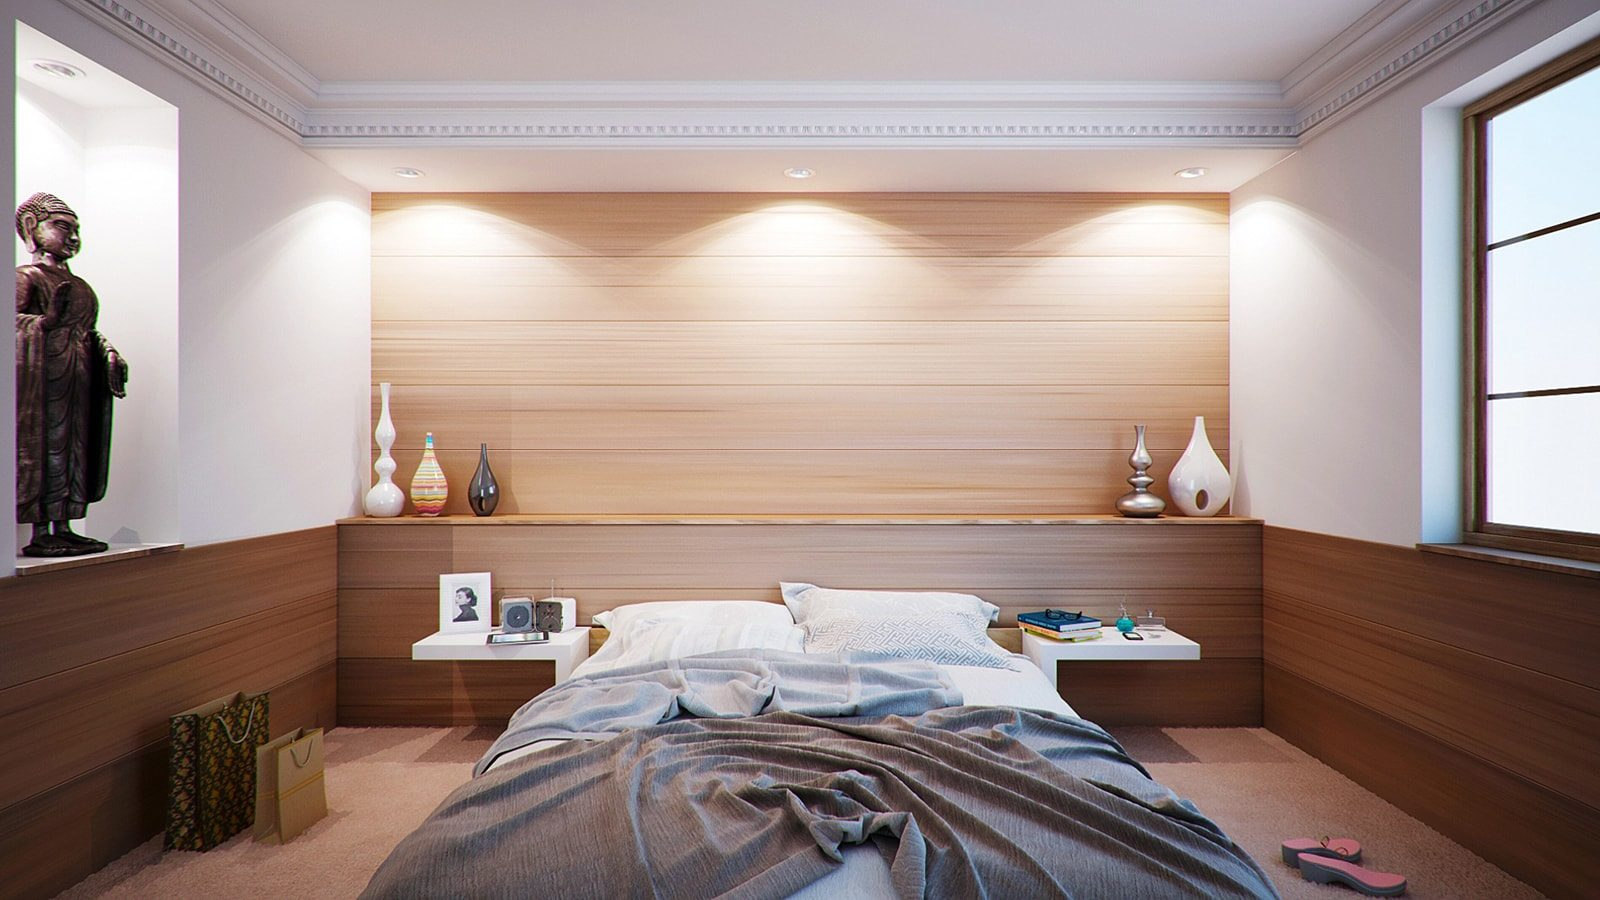 12 Accent Wall Ideas To Pop Up In the Bedroom